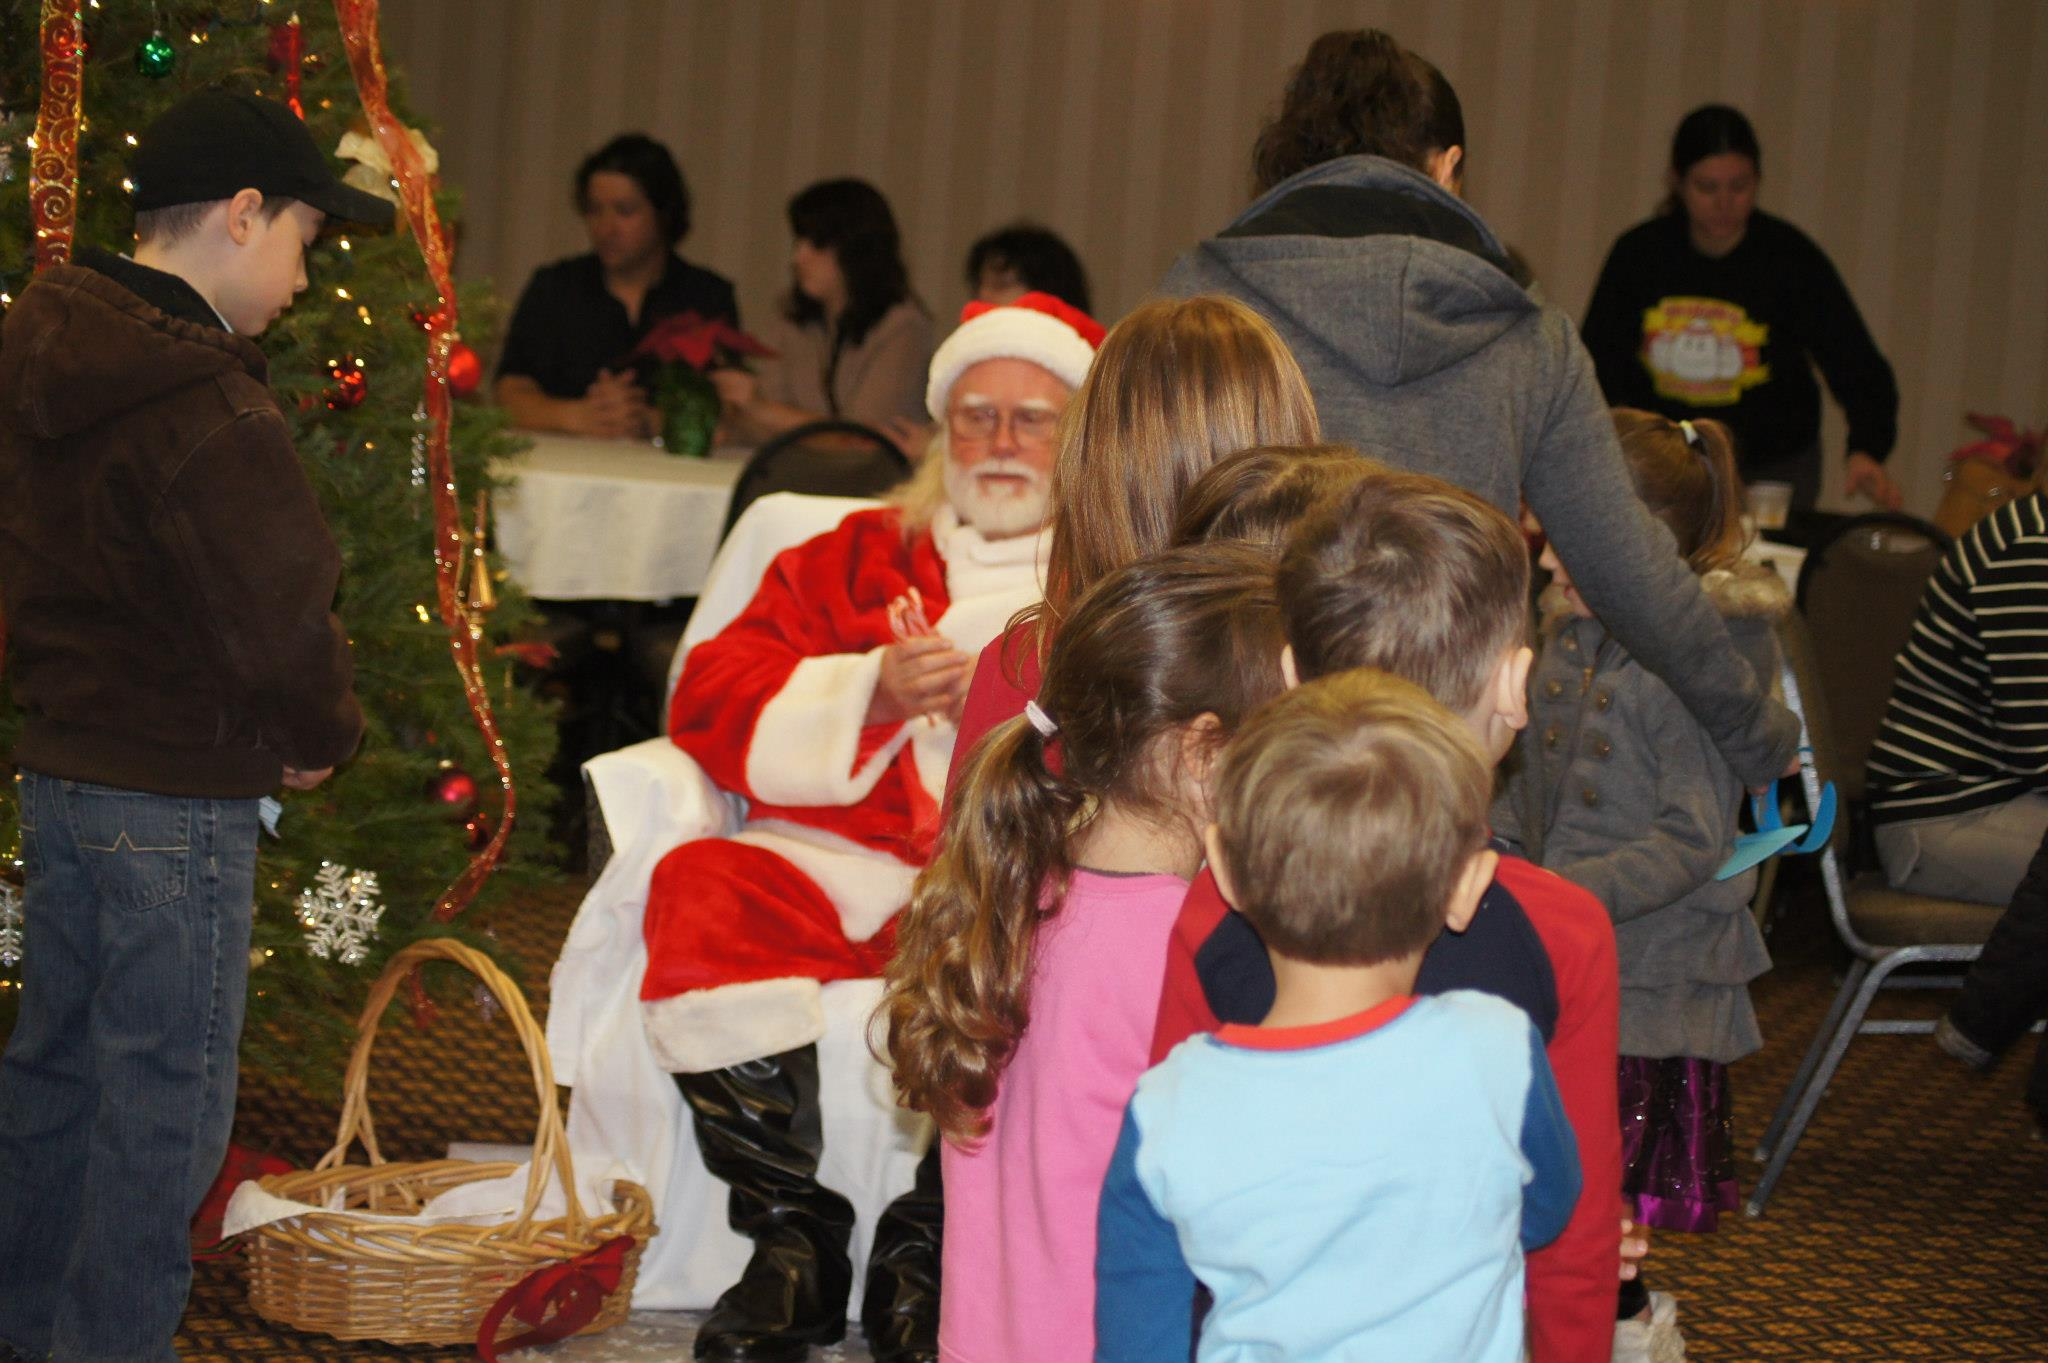 The Fun The Entire Family Can Enjoy A Hot Breakfast Buffet Visit With Santa Claus Dont Forget Your Wish List Ride The Toys For Tots Train Outside